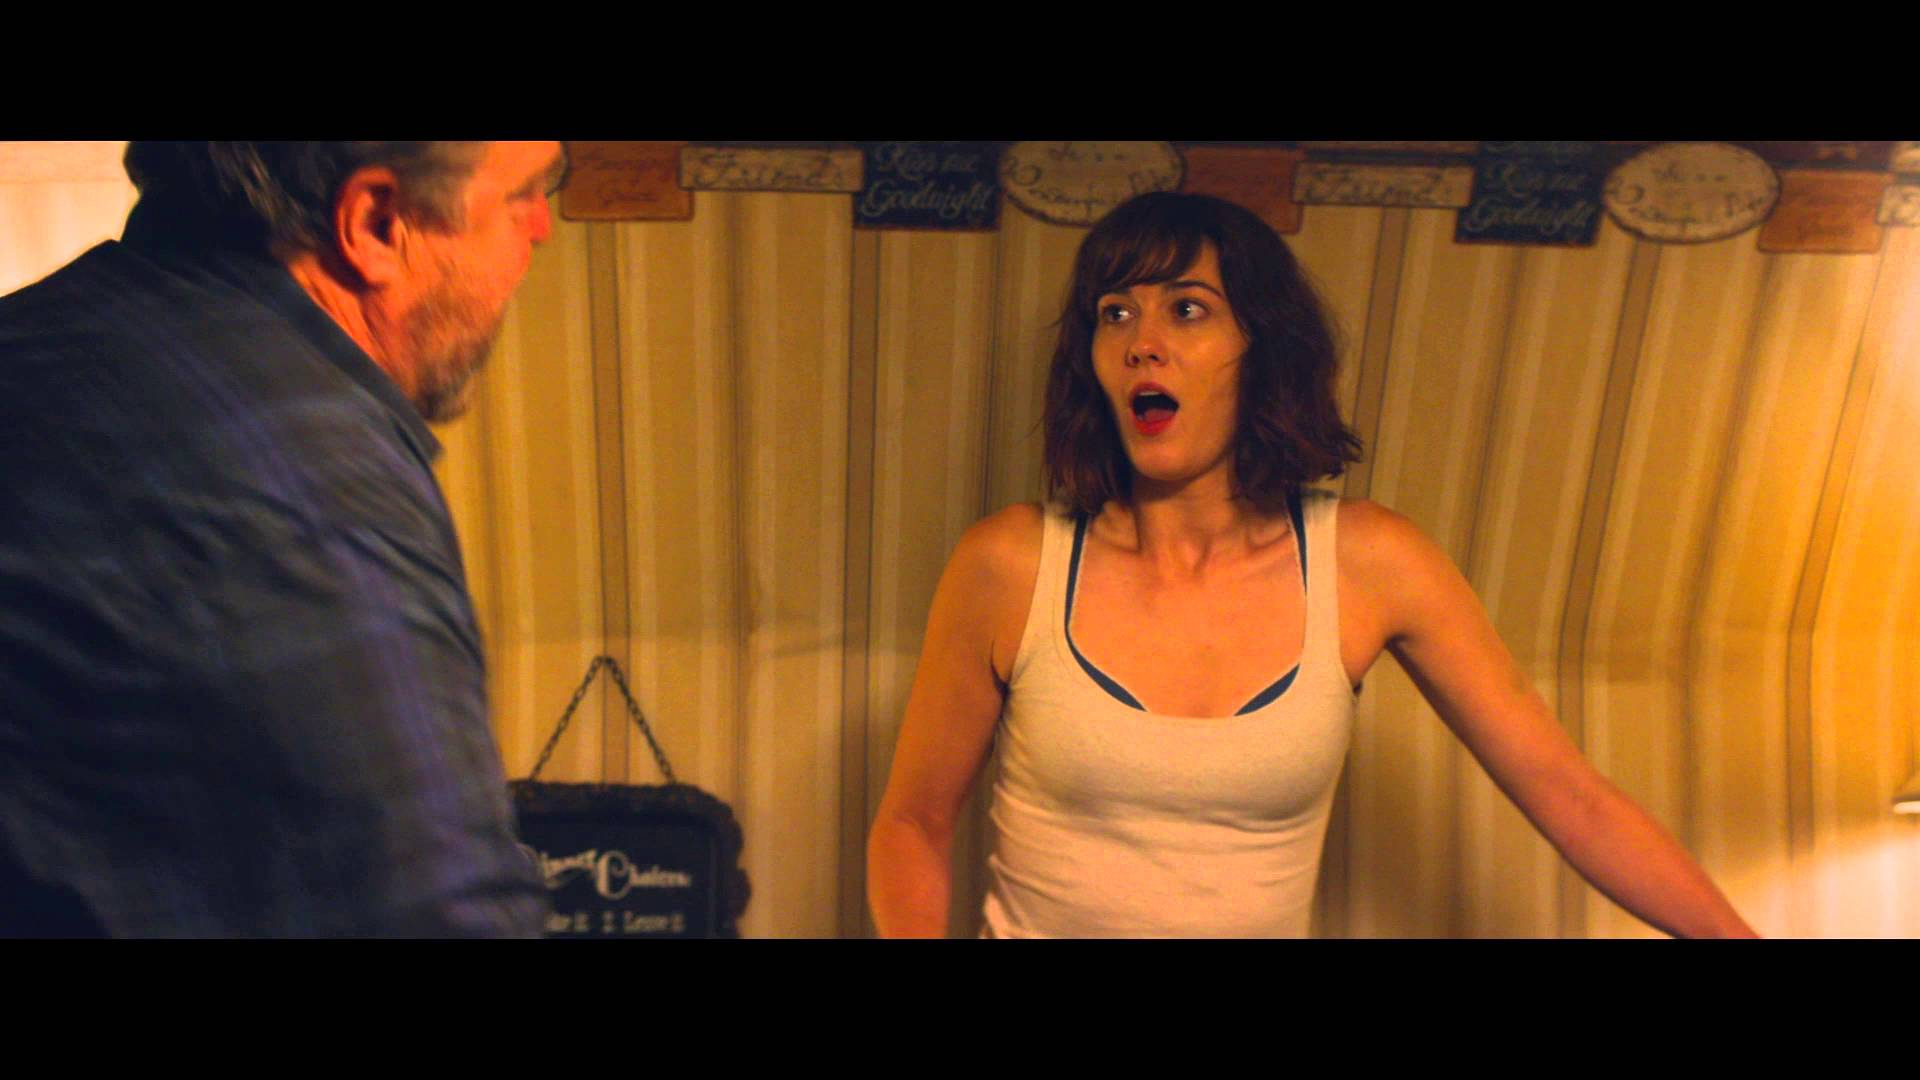 10 Cloverfield Lane | Trailer #2 | Paramount Pictures UK